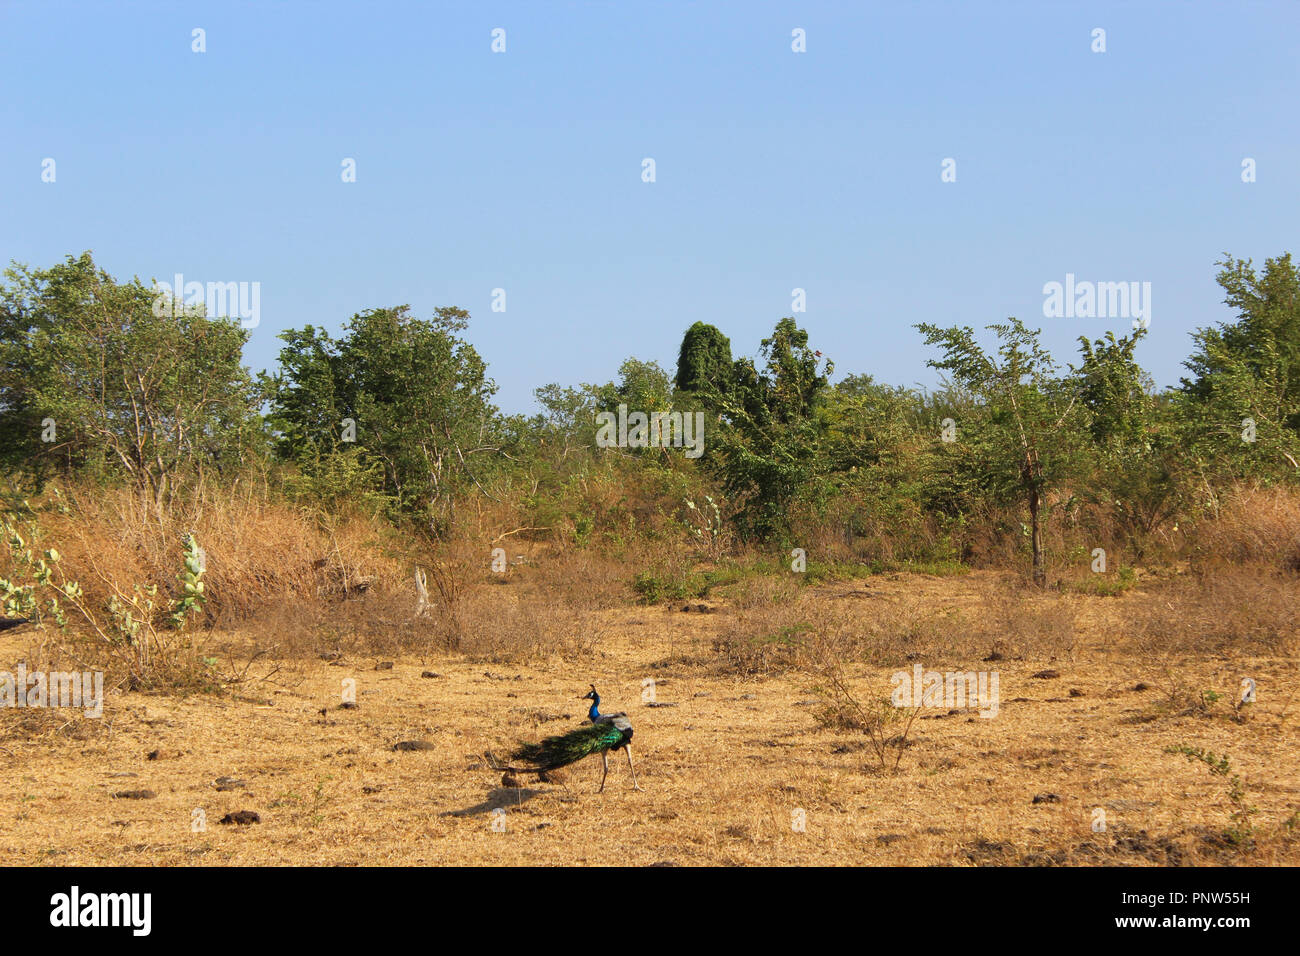 Peacock runs over dry deserts ground - Stock Image